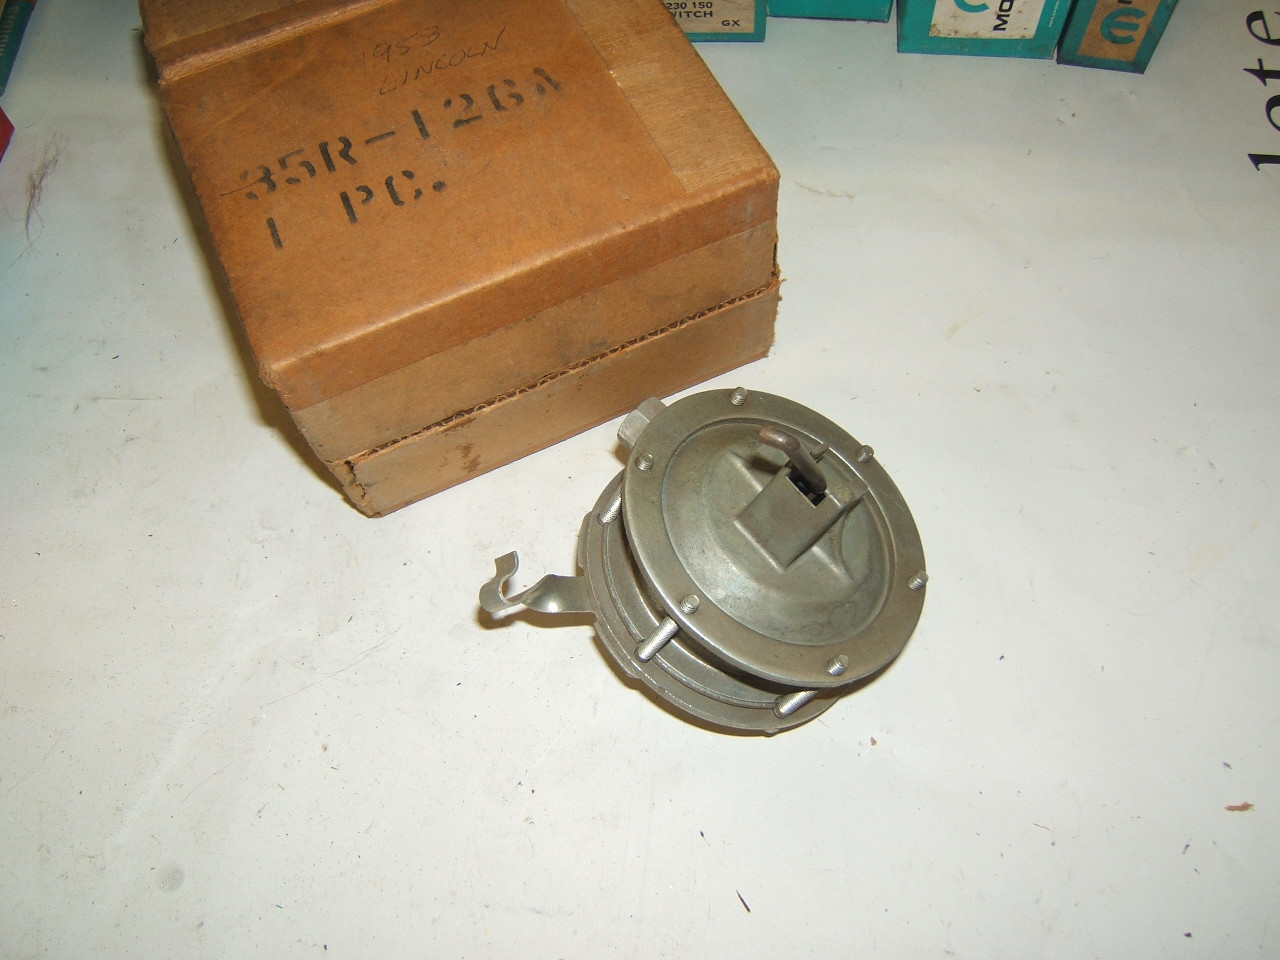 1953 lincoln Distributor vacuum advance nos (a 35r-126a)